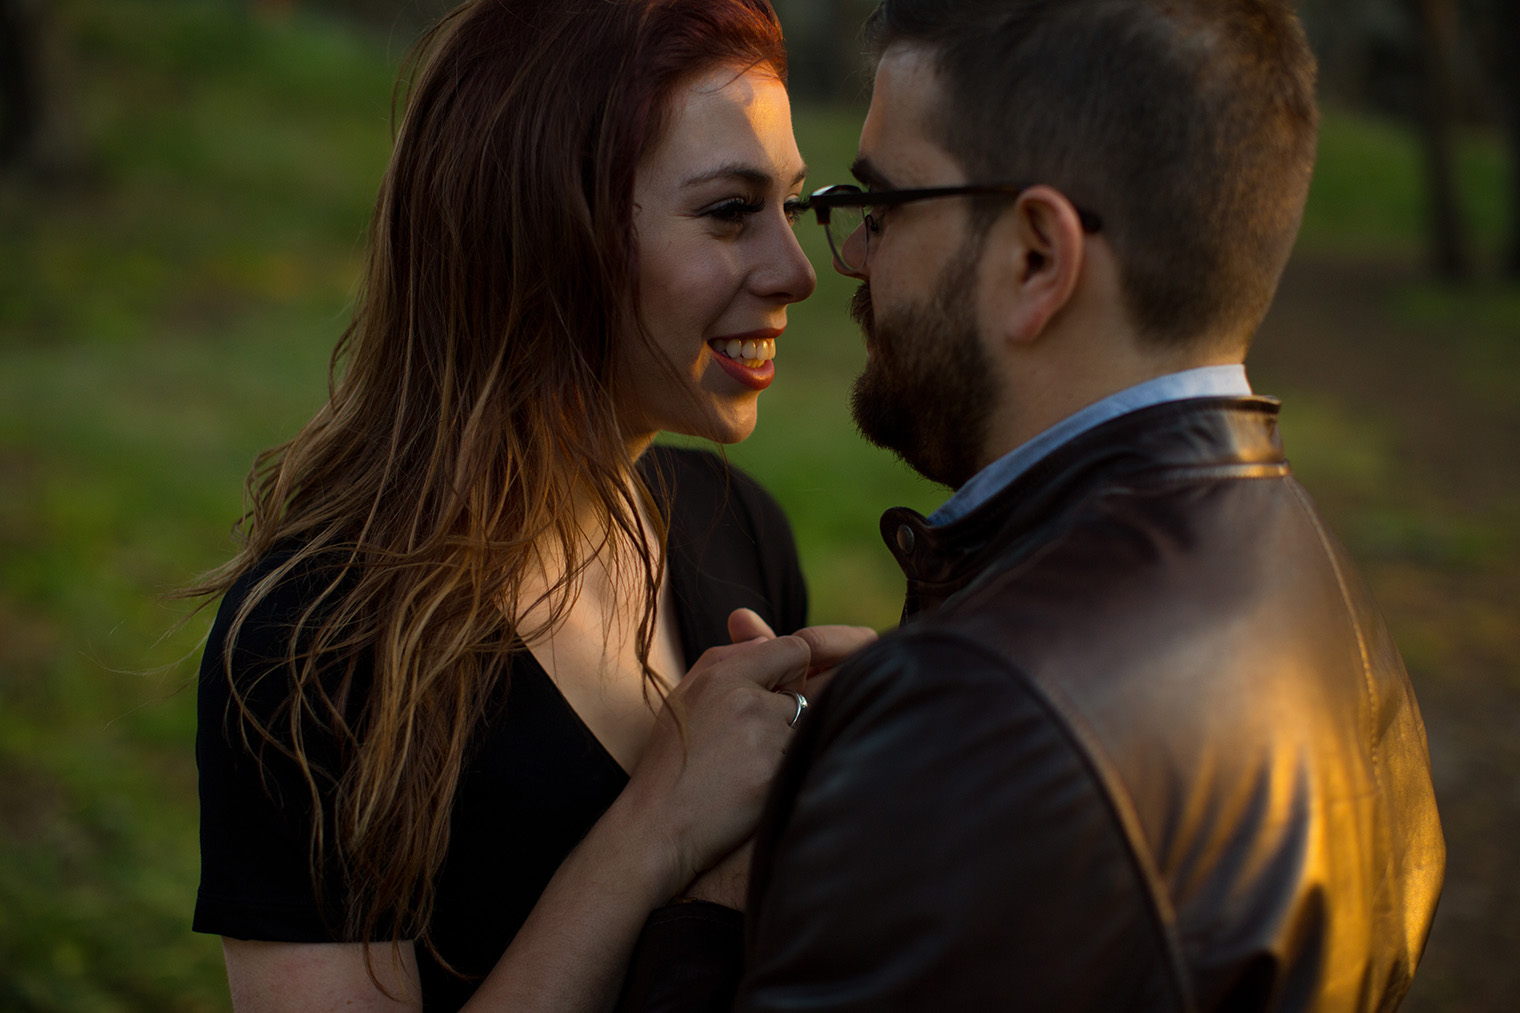 presidio engagement session at sunset